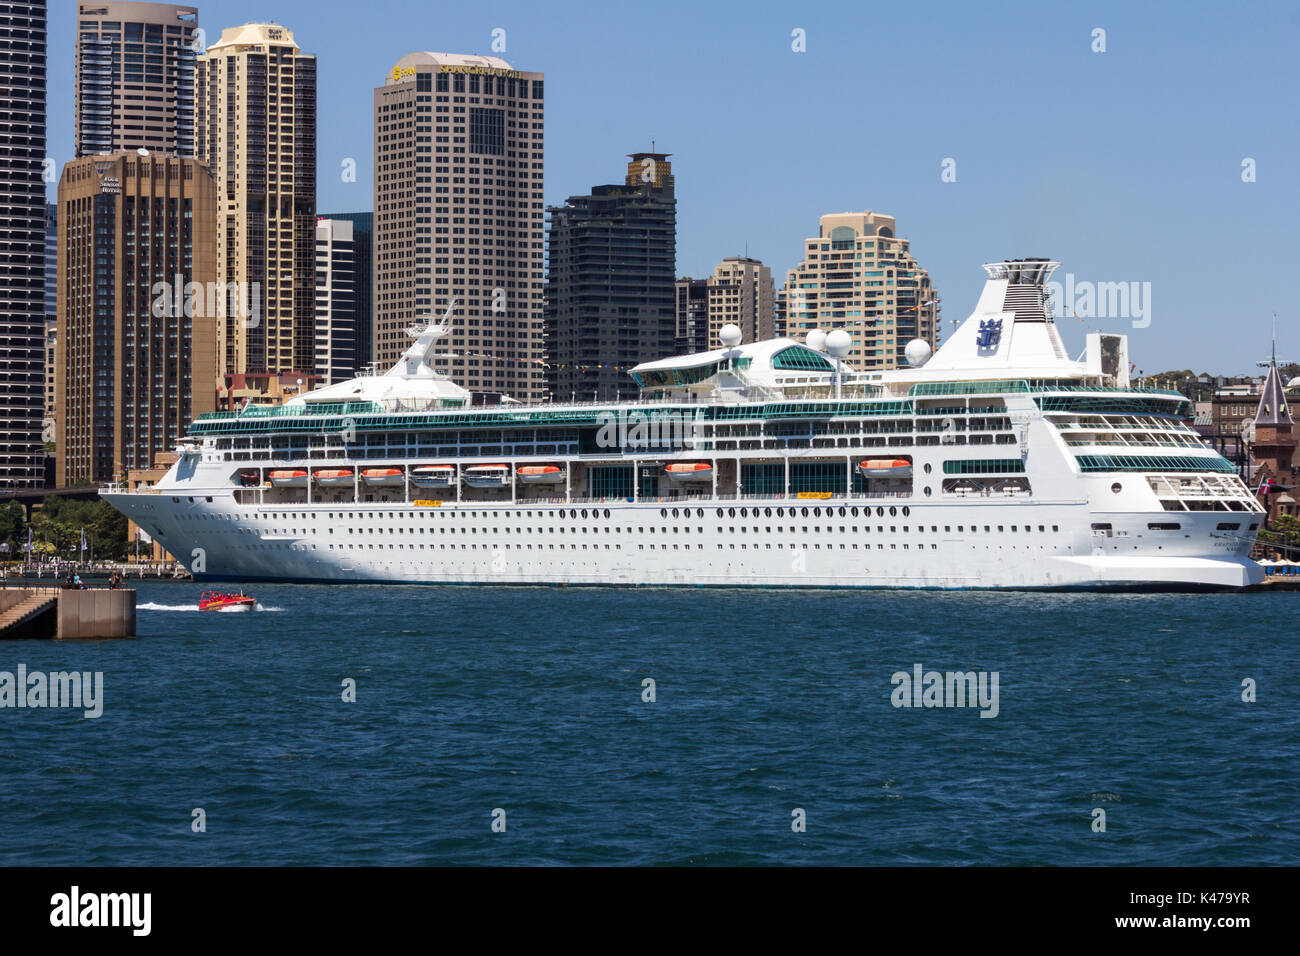 The Royal Caribbean International cruise ship Rhapsody of the Seas moored in Sydney harbour, NSW, New South Wales, Australia - Stock Image